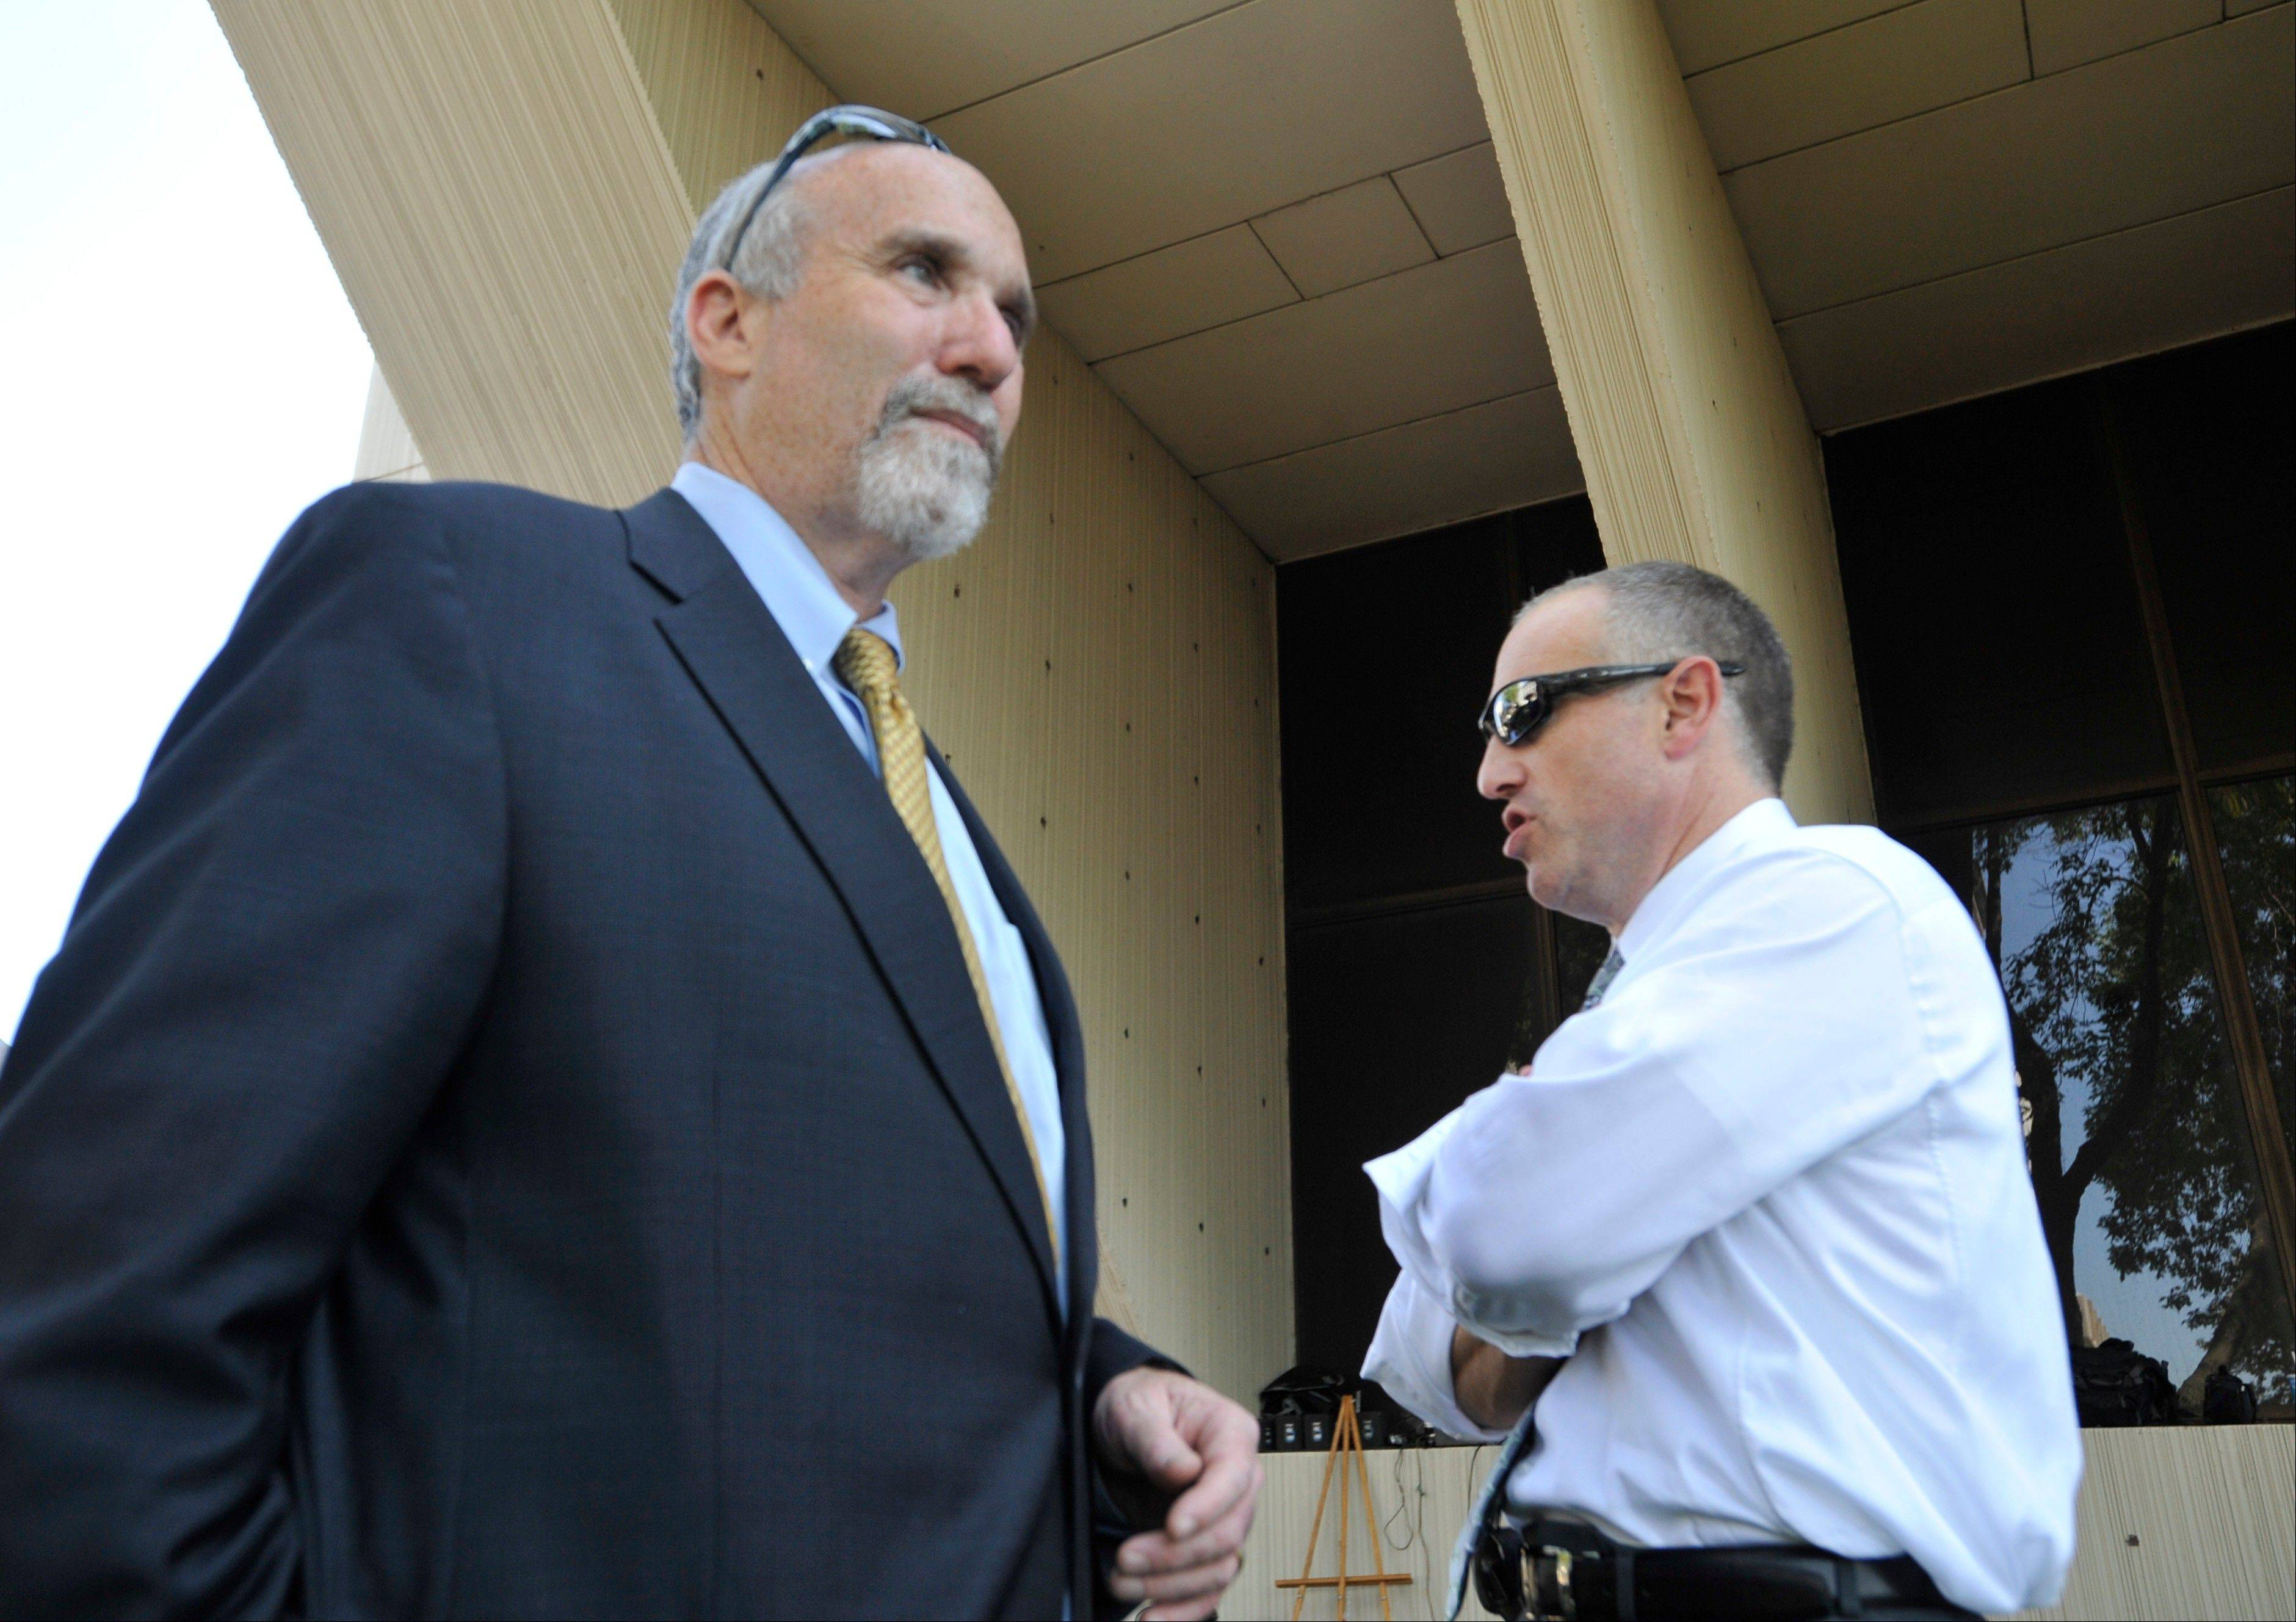 Attorneys Joel Brodsky, left, and Steven Greenberg confer outside the Will County courthouse during the second day of jury deliberations in Drew Peterson�s murder trial last September. Now Brodsky has filed a defamation suit against Greenberg, who says Brodsky did a shoddy job of defending Peterson.